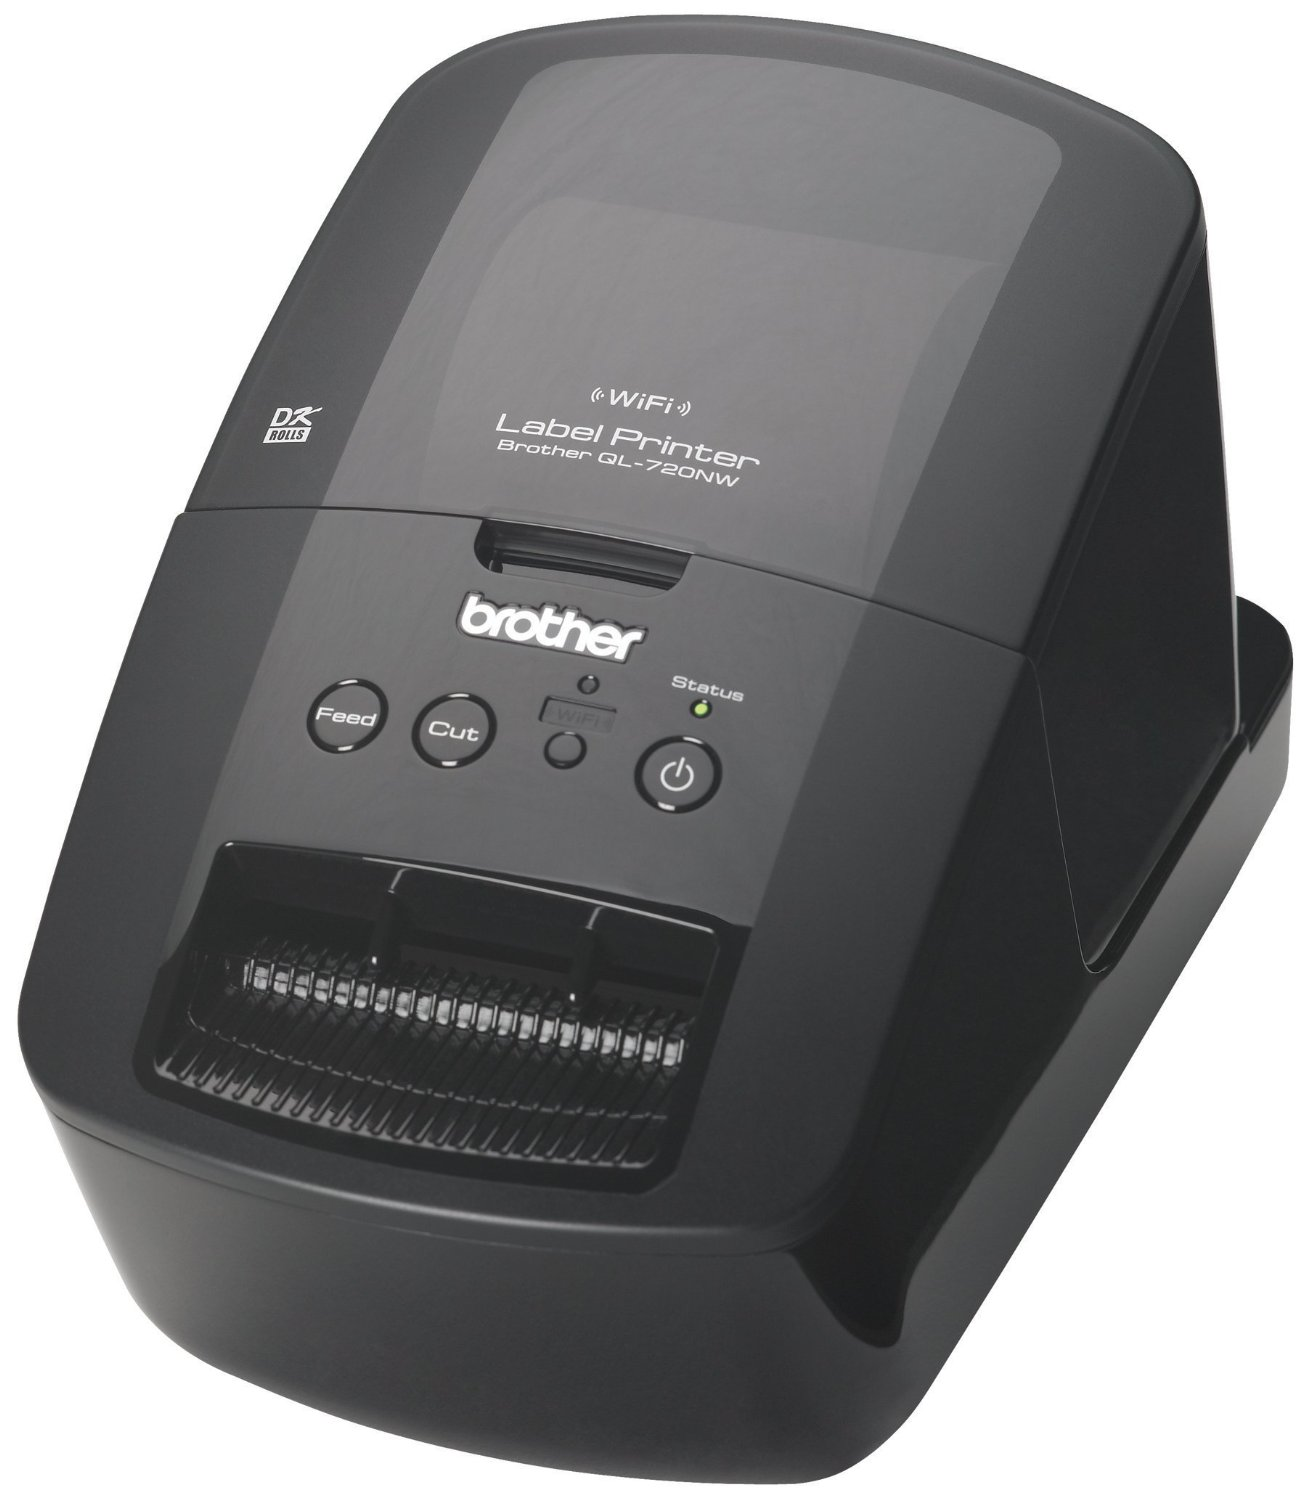 This is an image of Effortless Brother Ql Label Printer